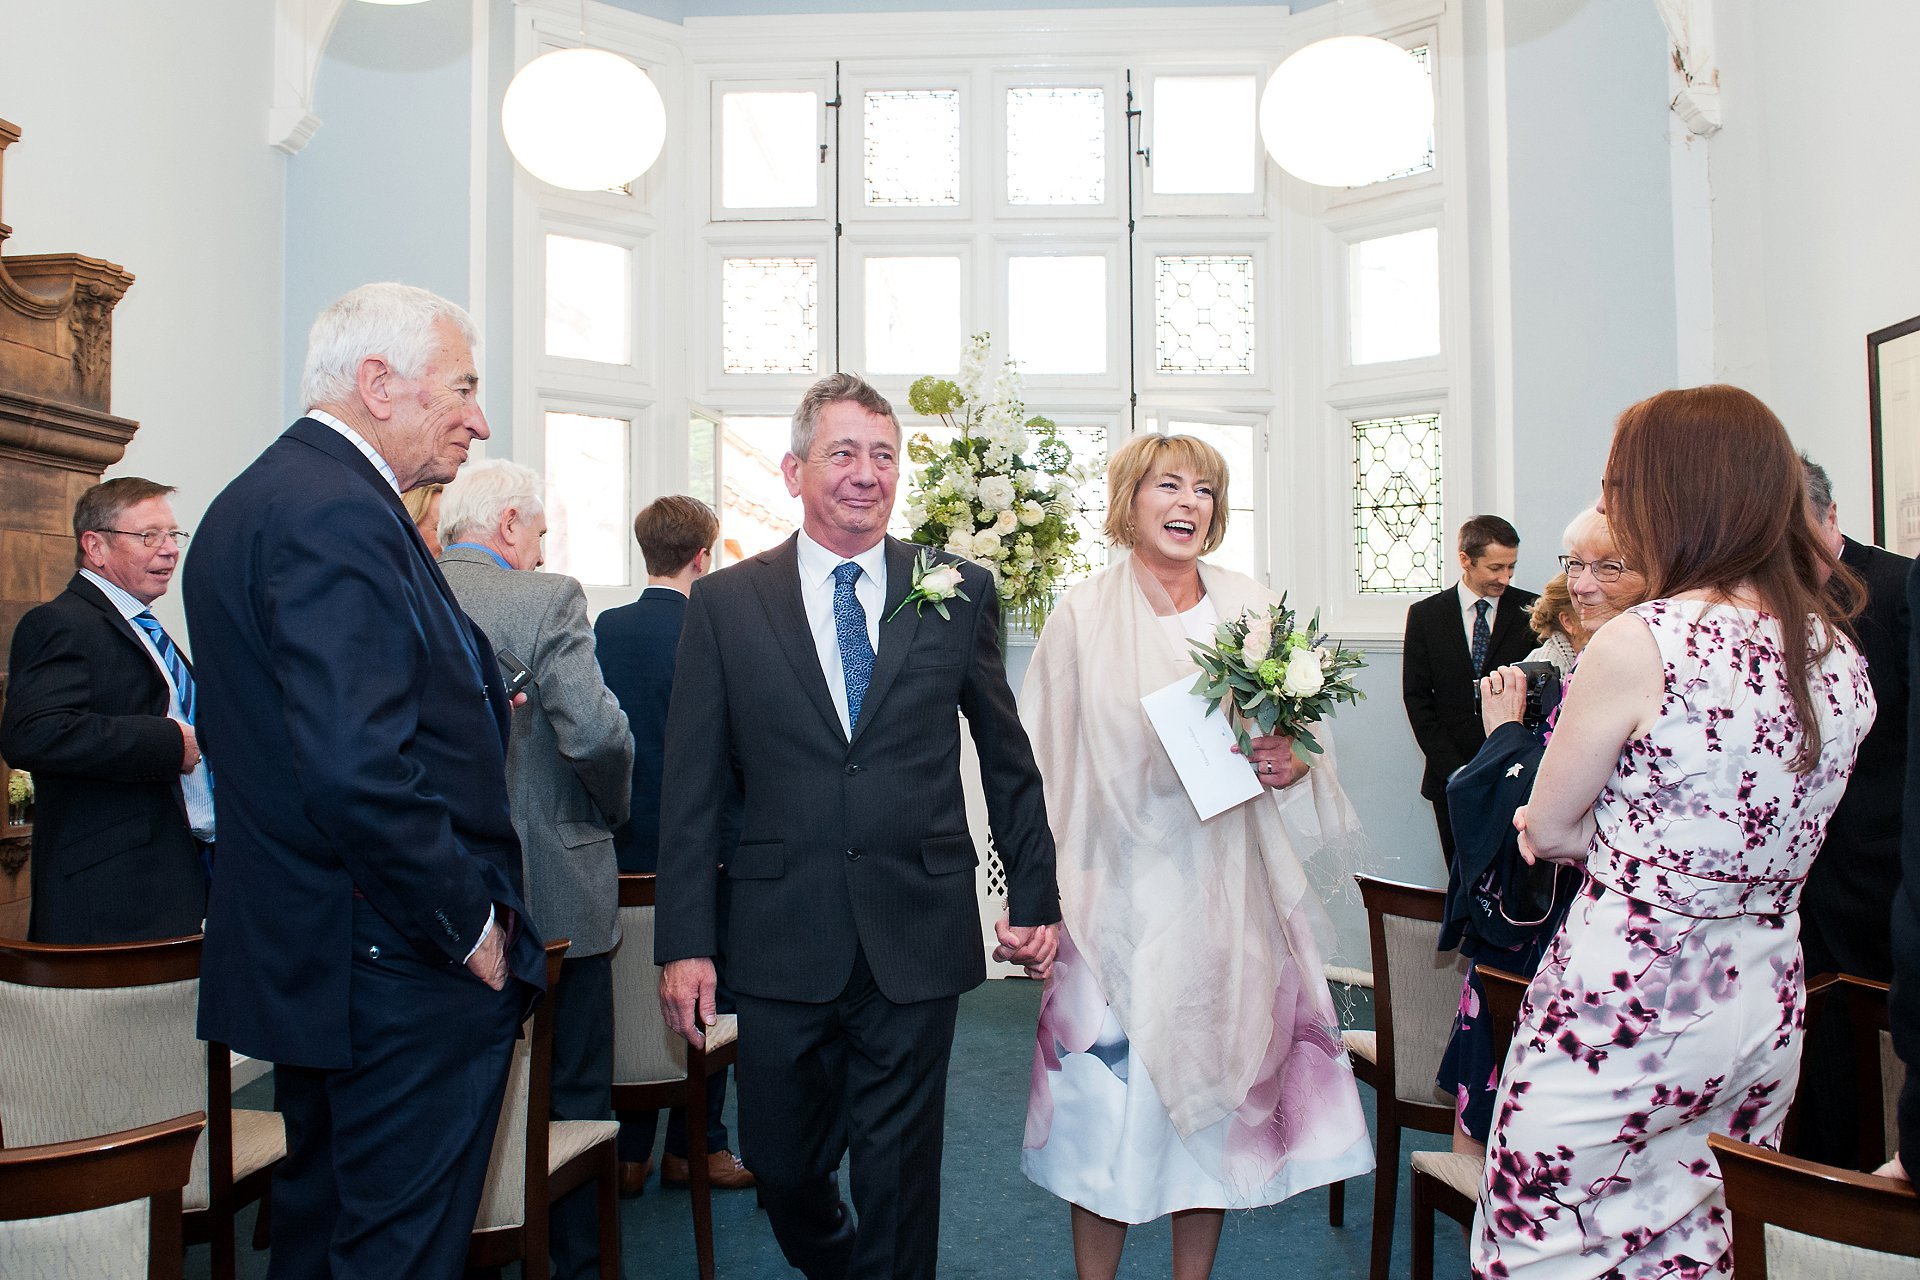 Bride & groom walk back the aisle in the Marylebone Room of Mayfair Library as husband and wife